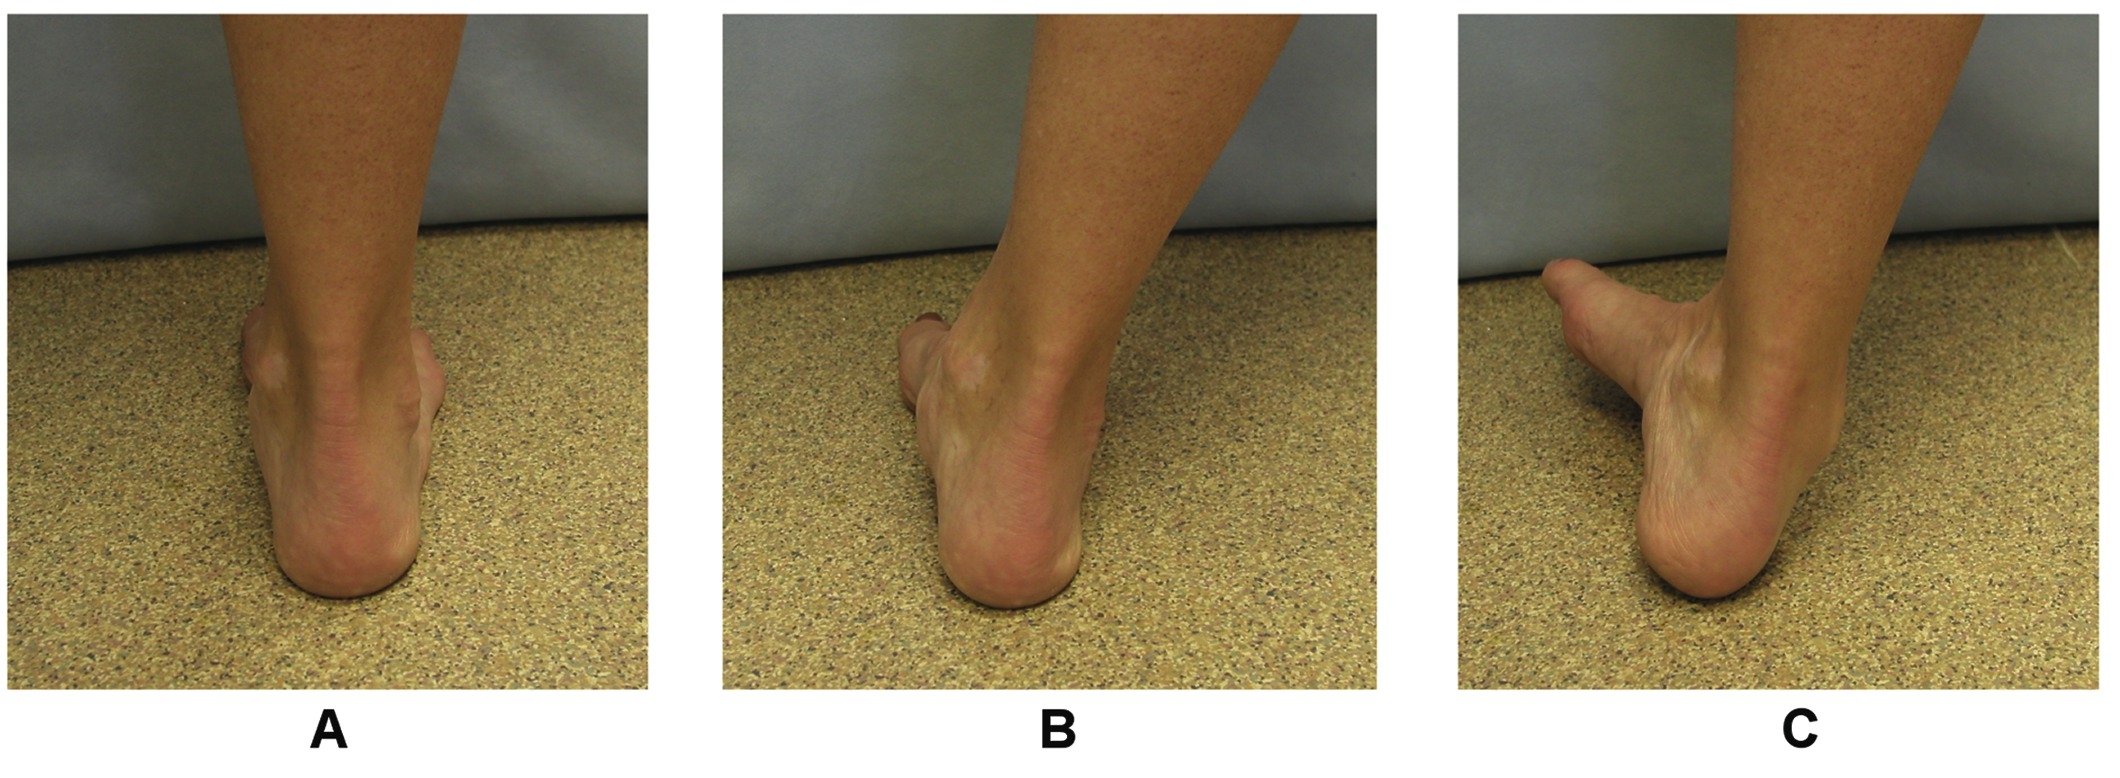 Chronic Ankle Instability: Can